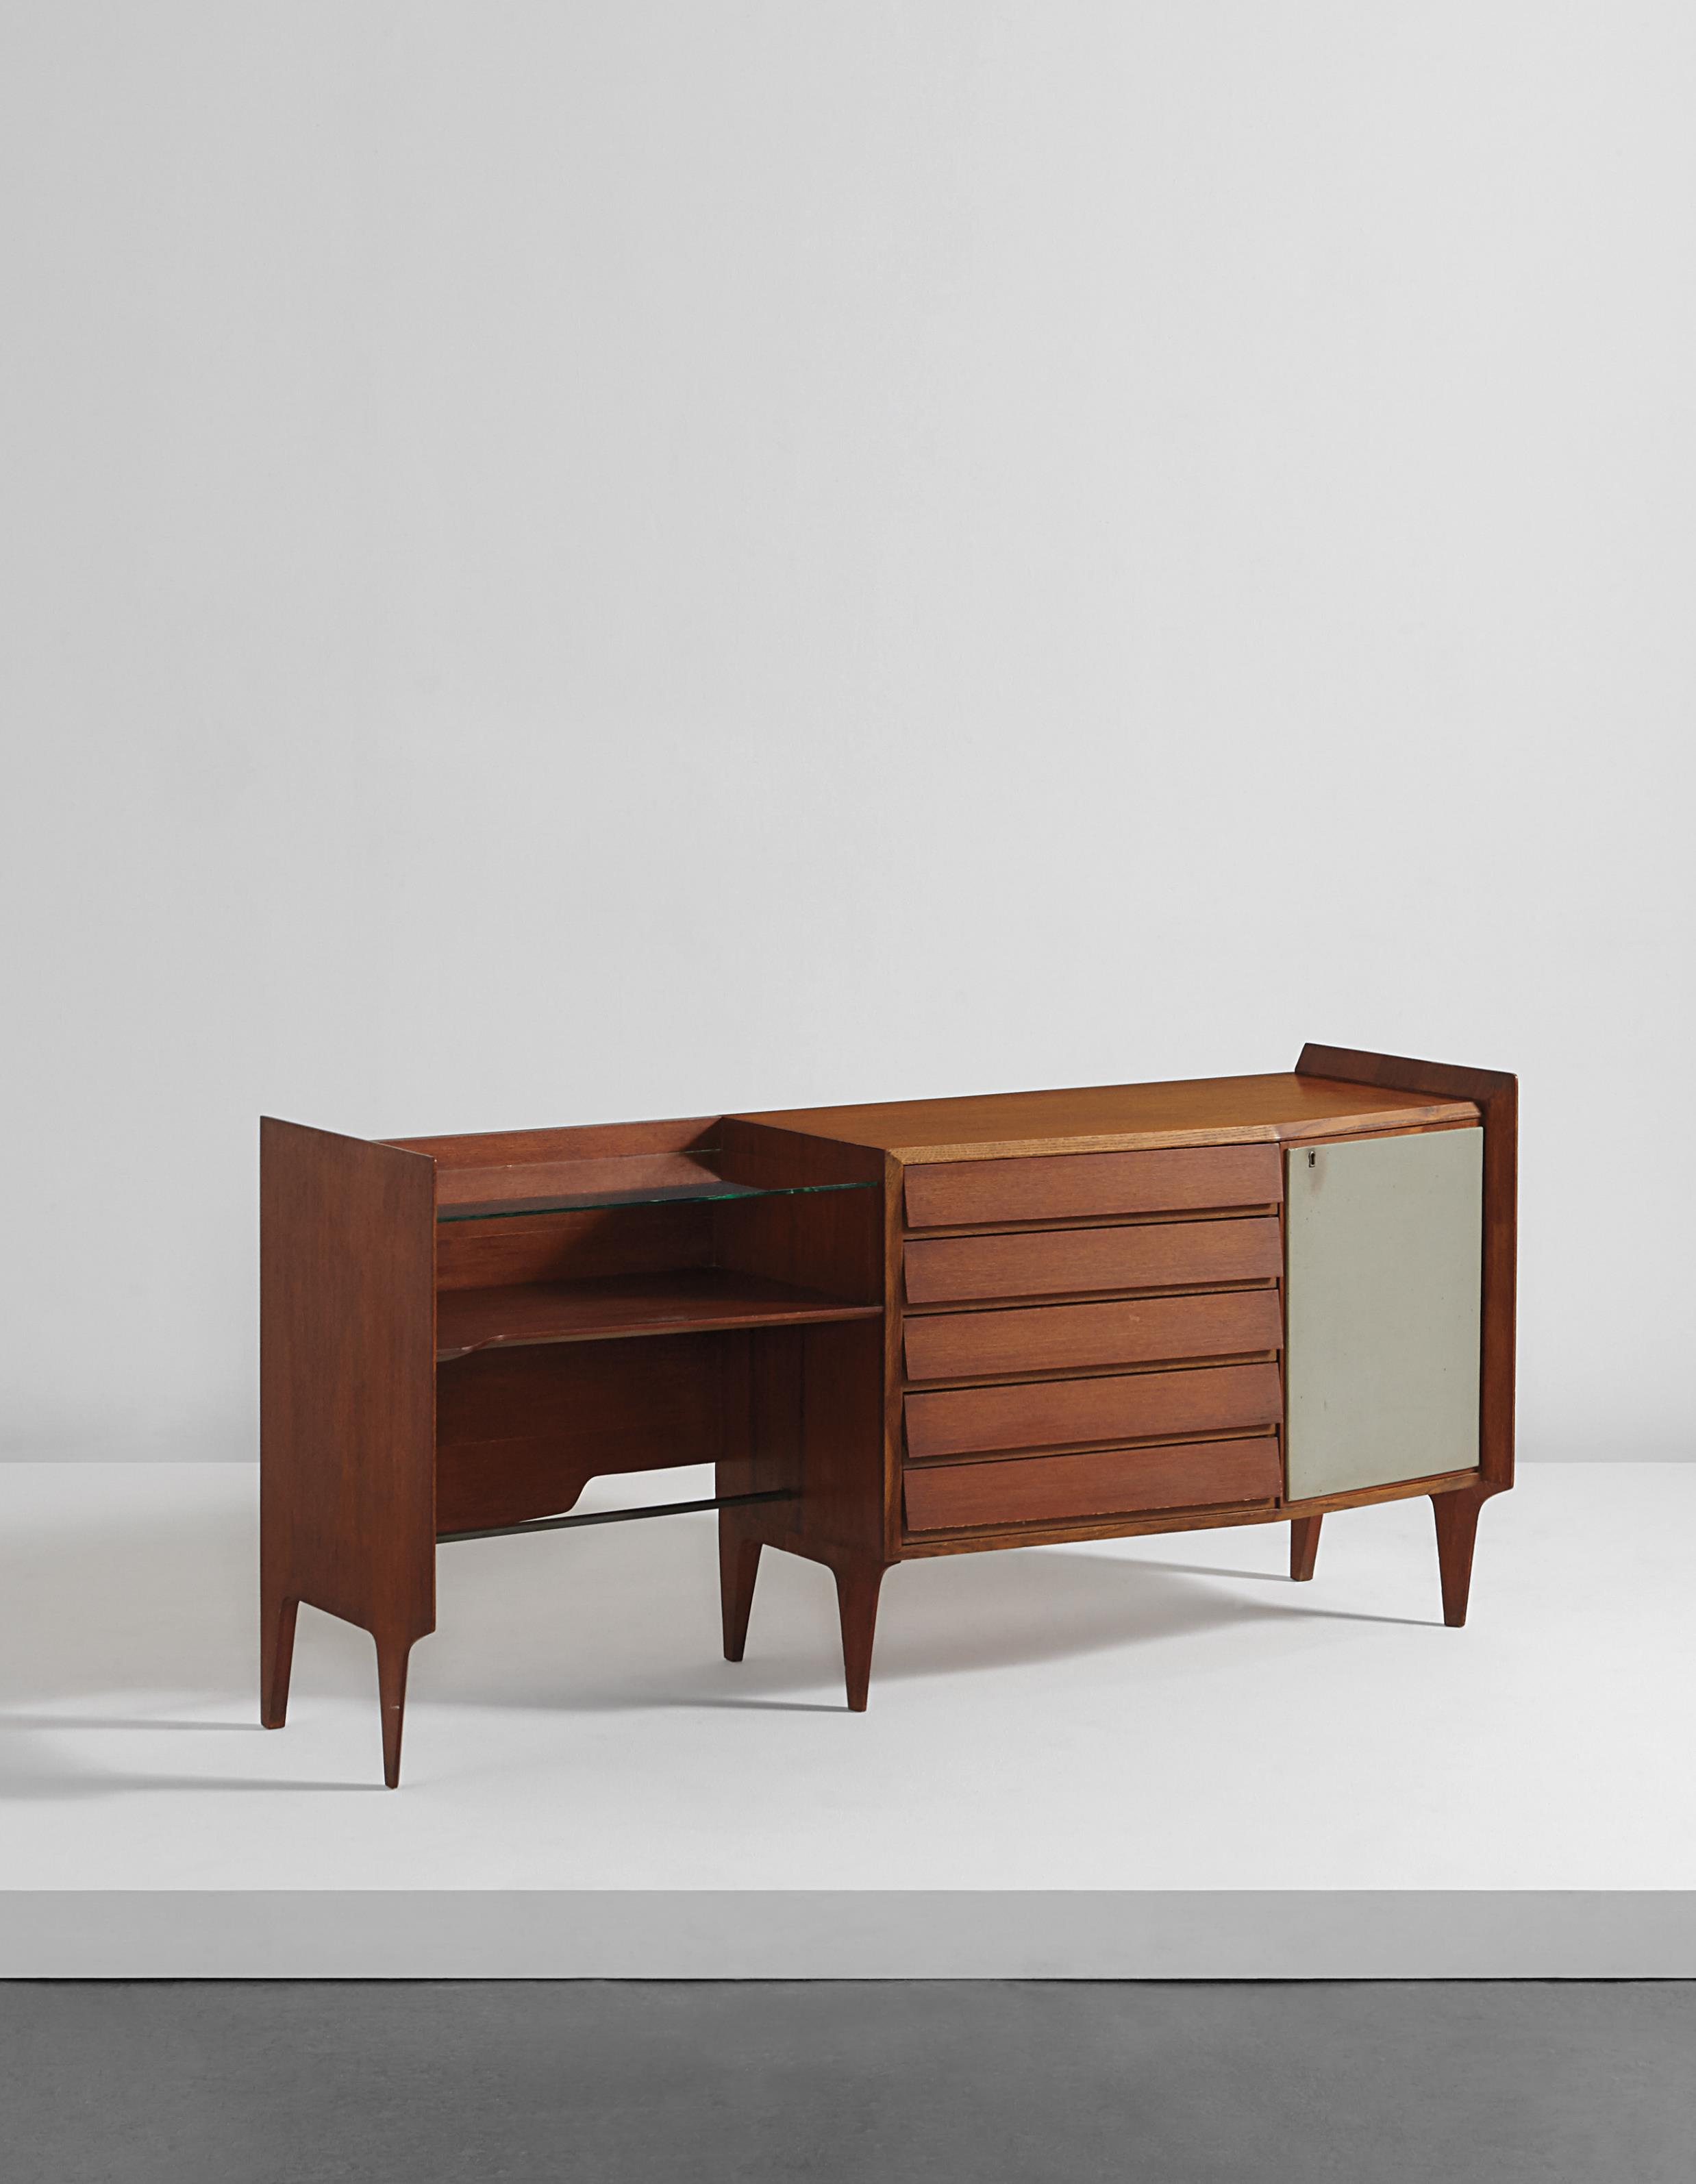 Gio ponti appraisal and valuation Find value of Gio ponti with